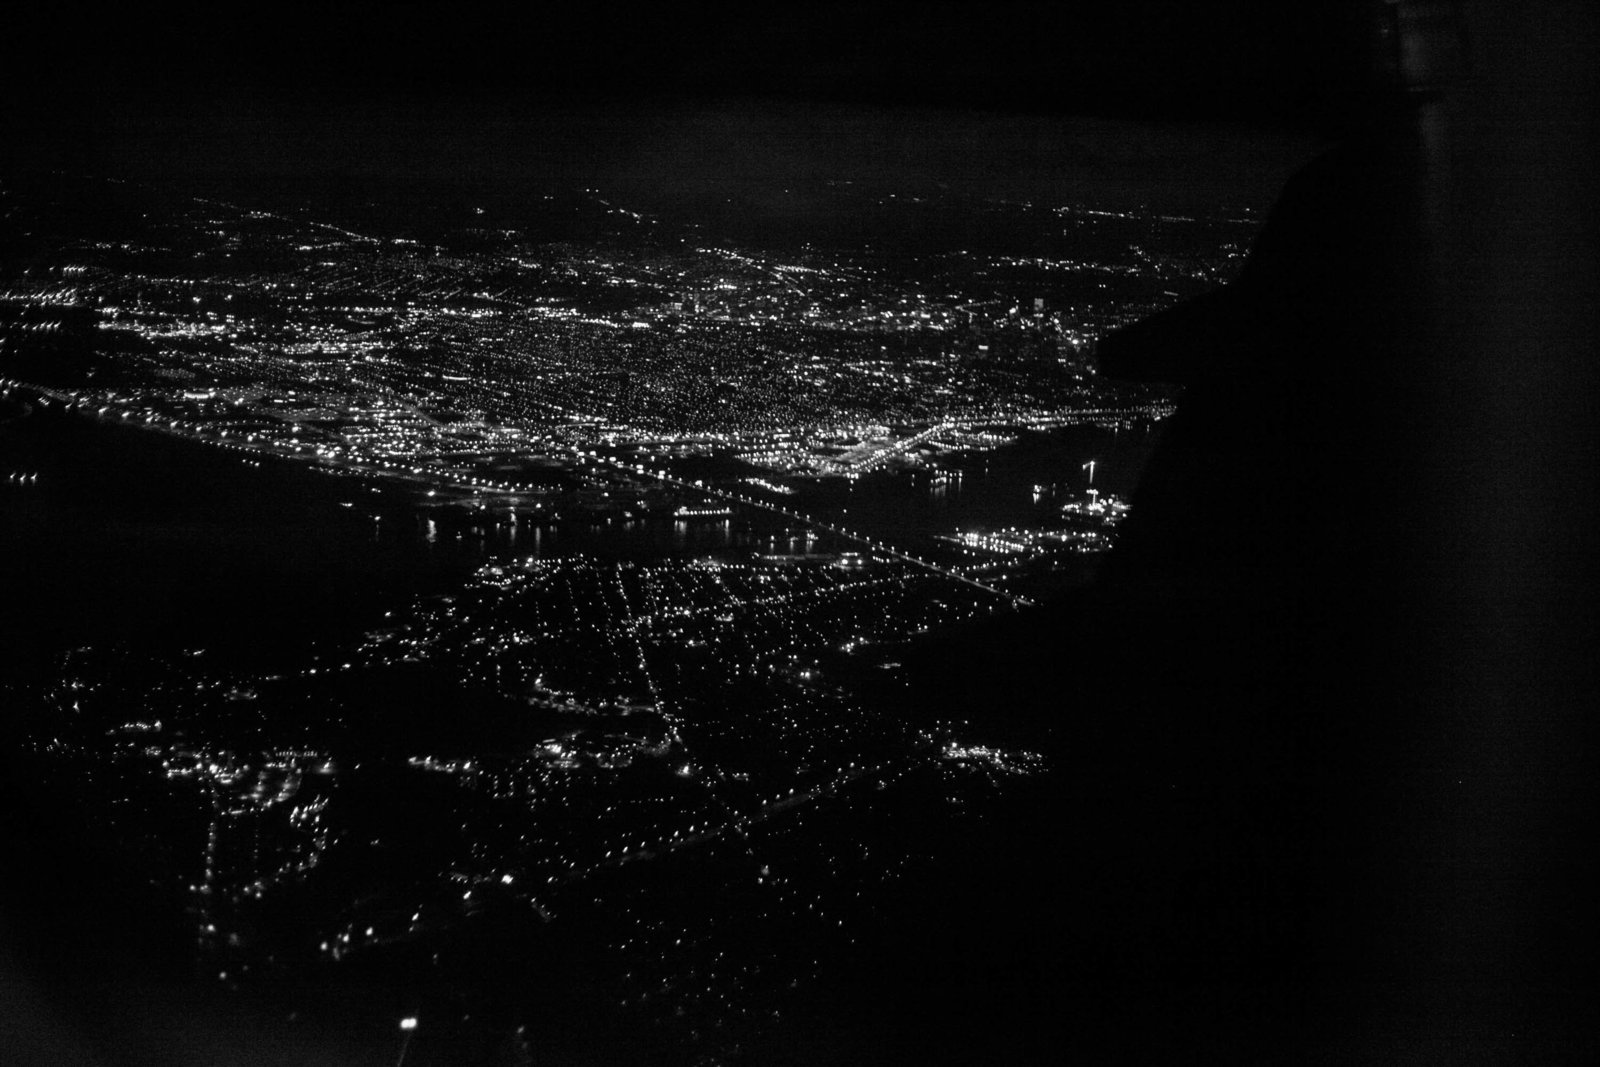 aerial-city-lights-night-travel-aruba-kate-timbers-photography-860